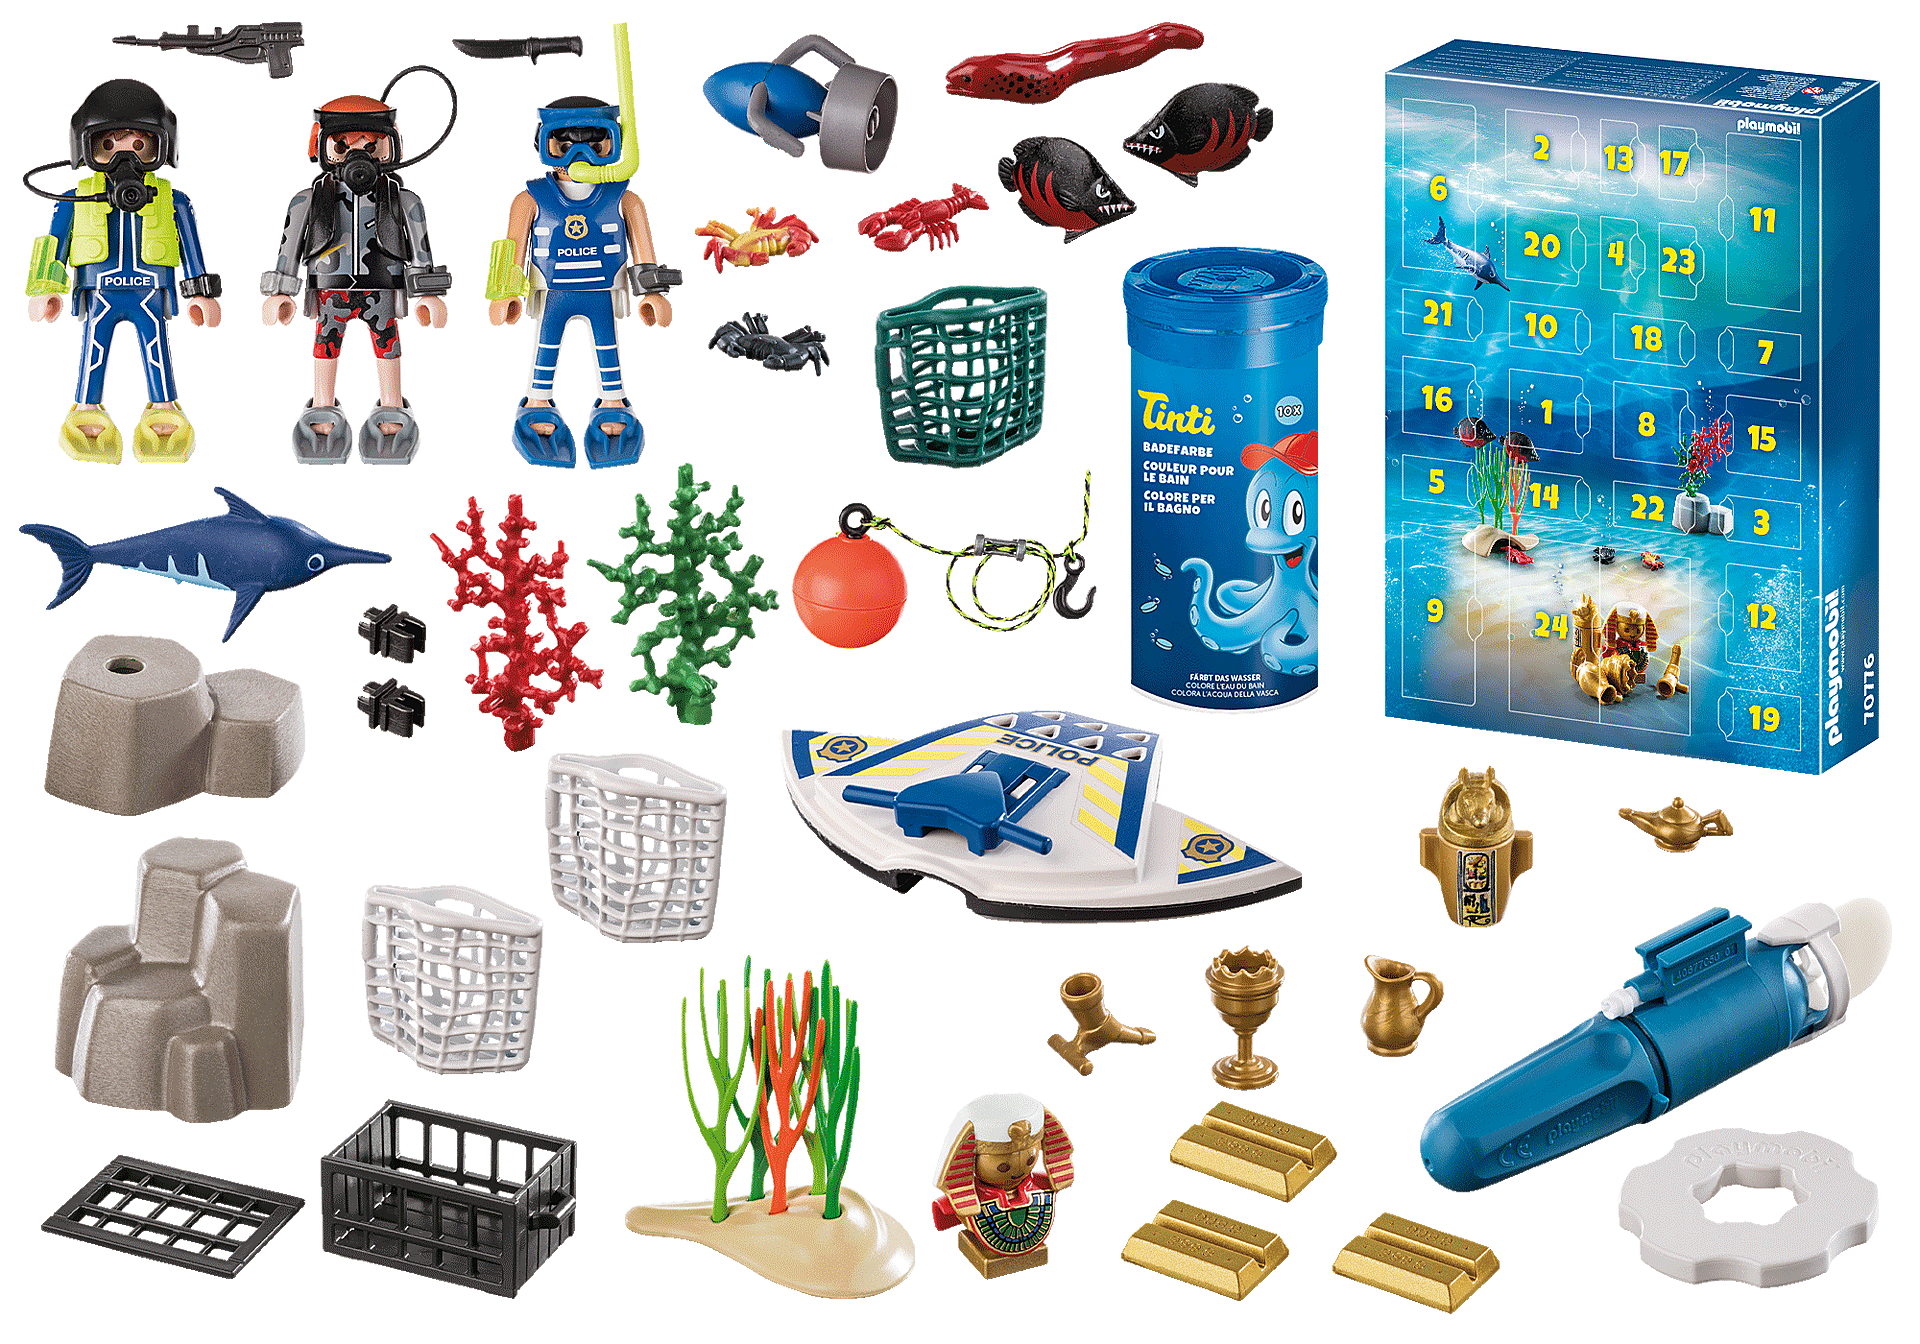 70776 Advent Calendar - Bathing Fun Police Diving Mission zoom image4